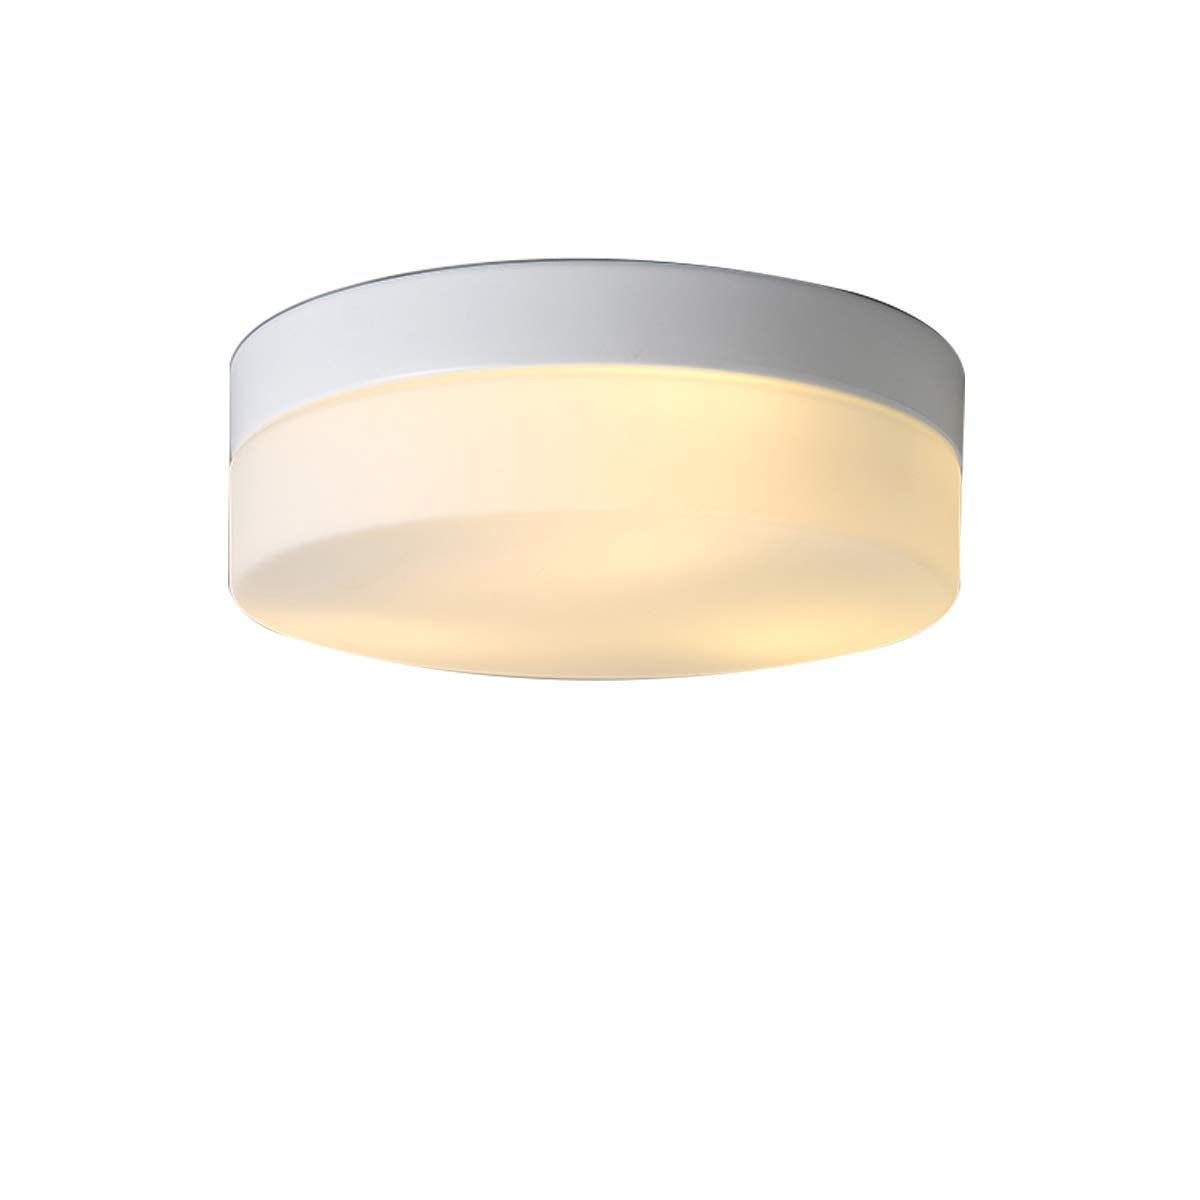 Windsor Home Deco A Glass Ceiling Lamp Flush Mount WH-61757B Ceiling Lighting Brown Ceiling Lights Led